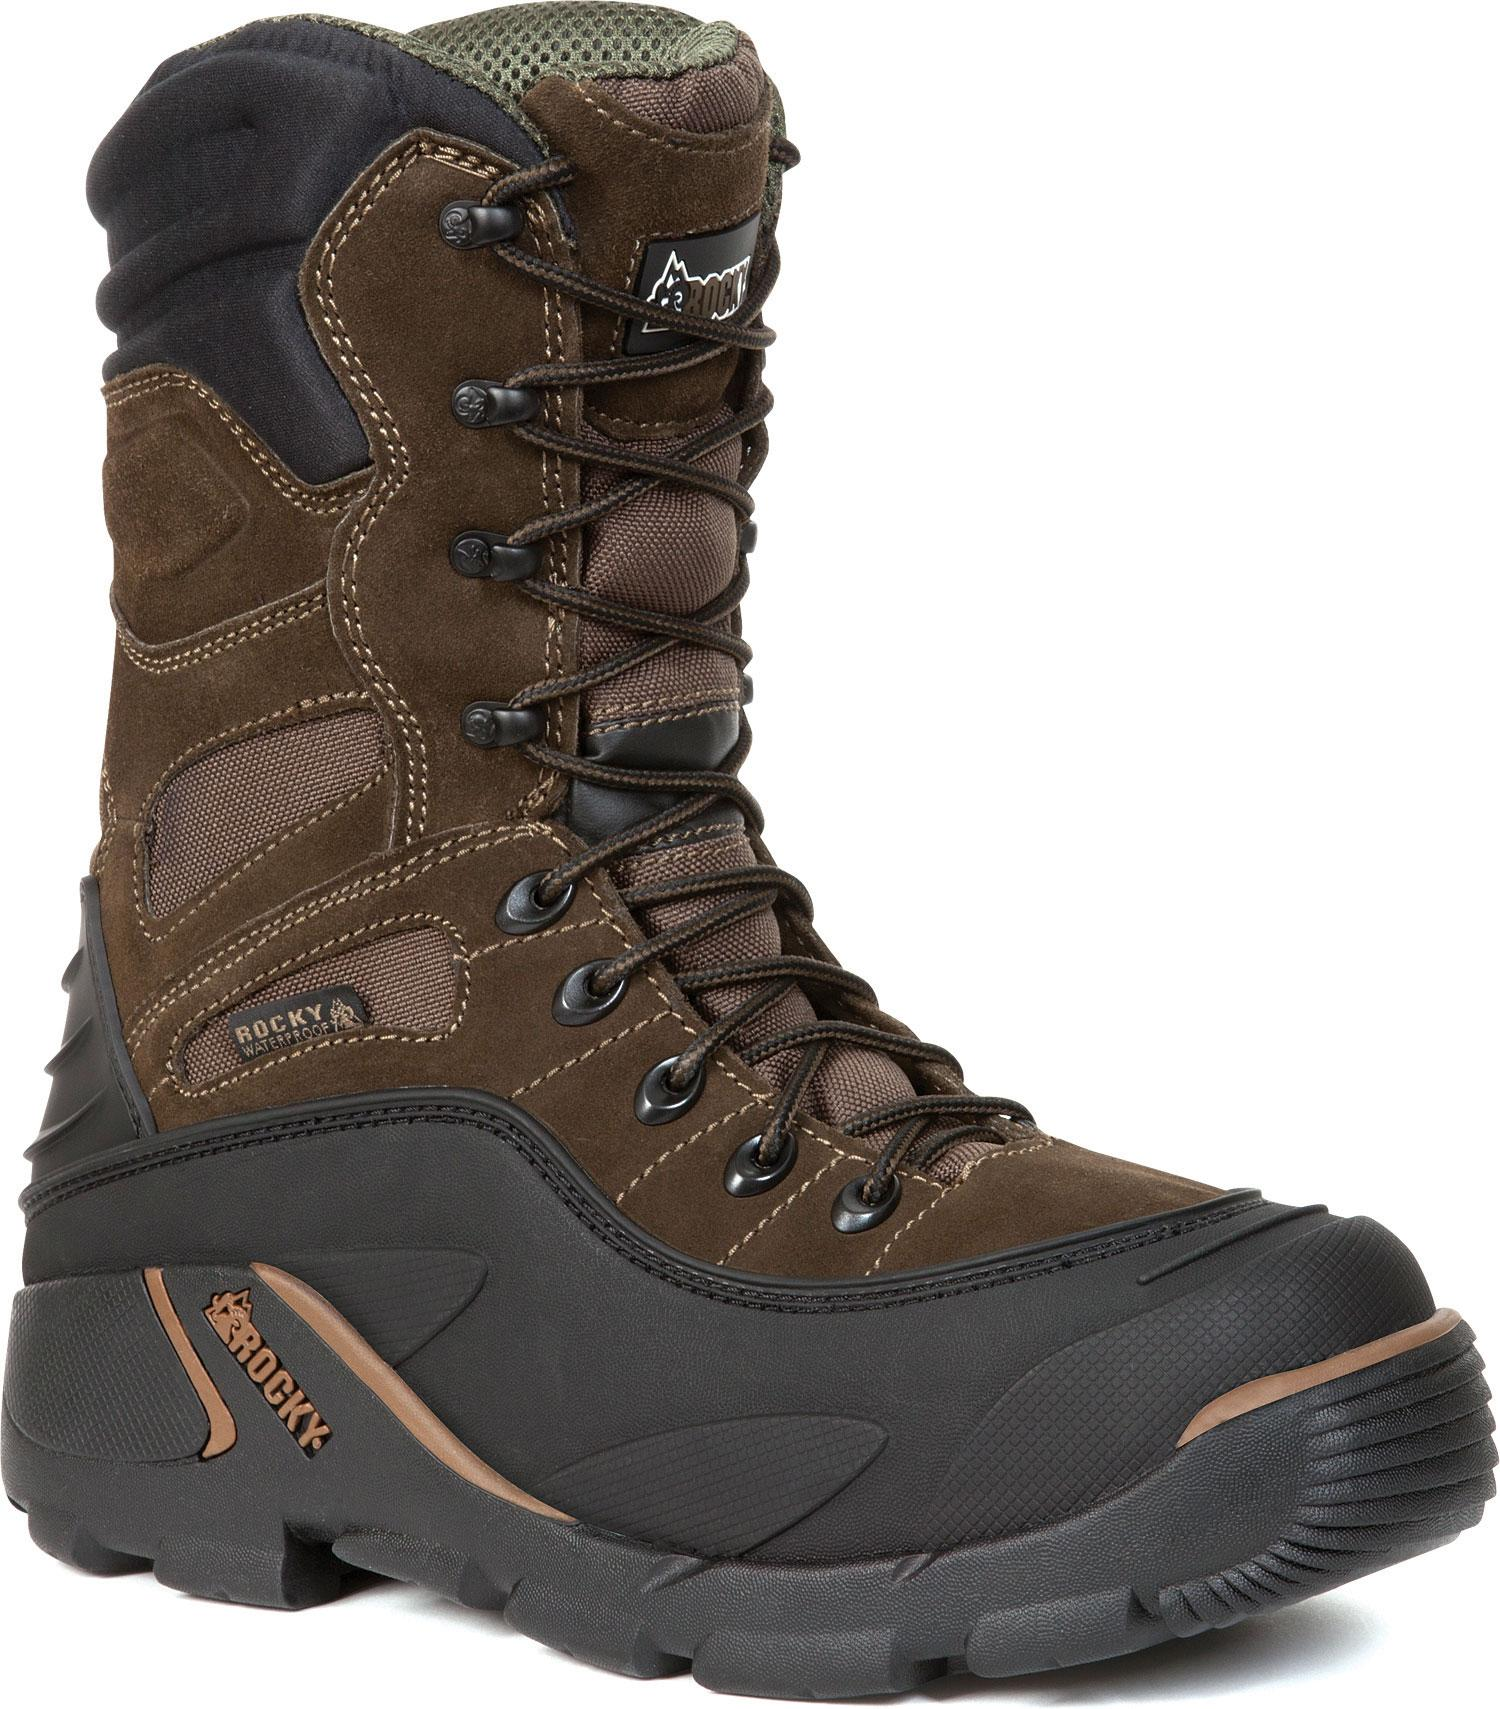 Mens Insulated Boots PN8g0EjD